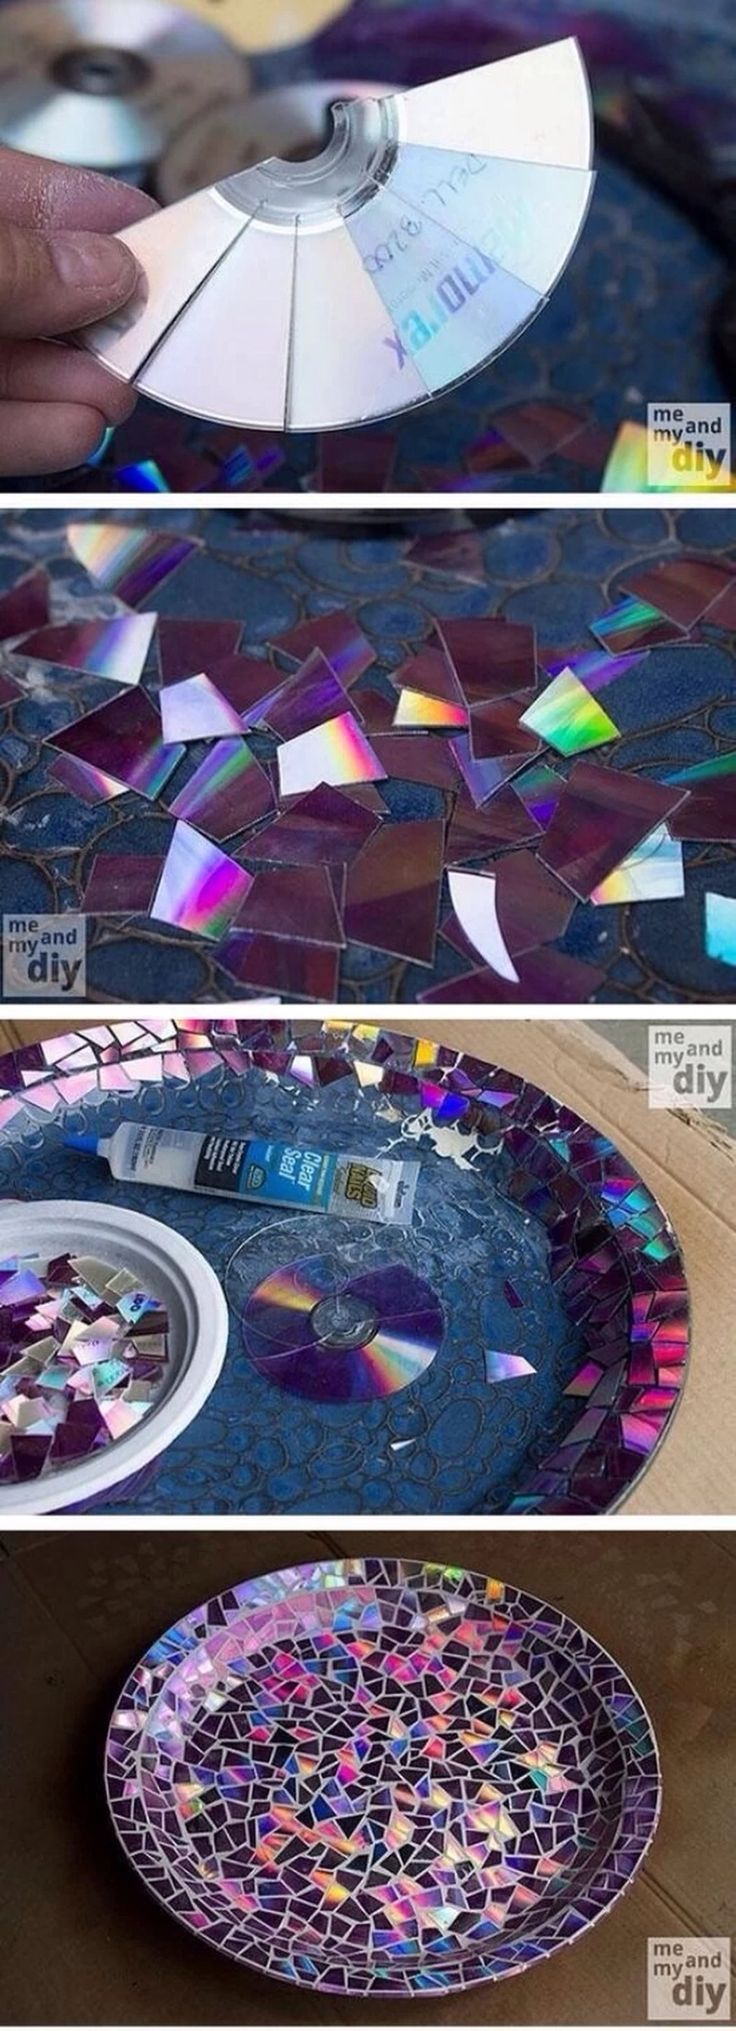 DIY Outside Mosaic Platter. You just need an old dish, some colorful CDs, and clear dry glue